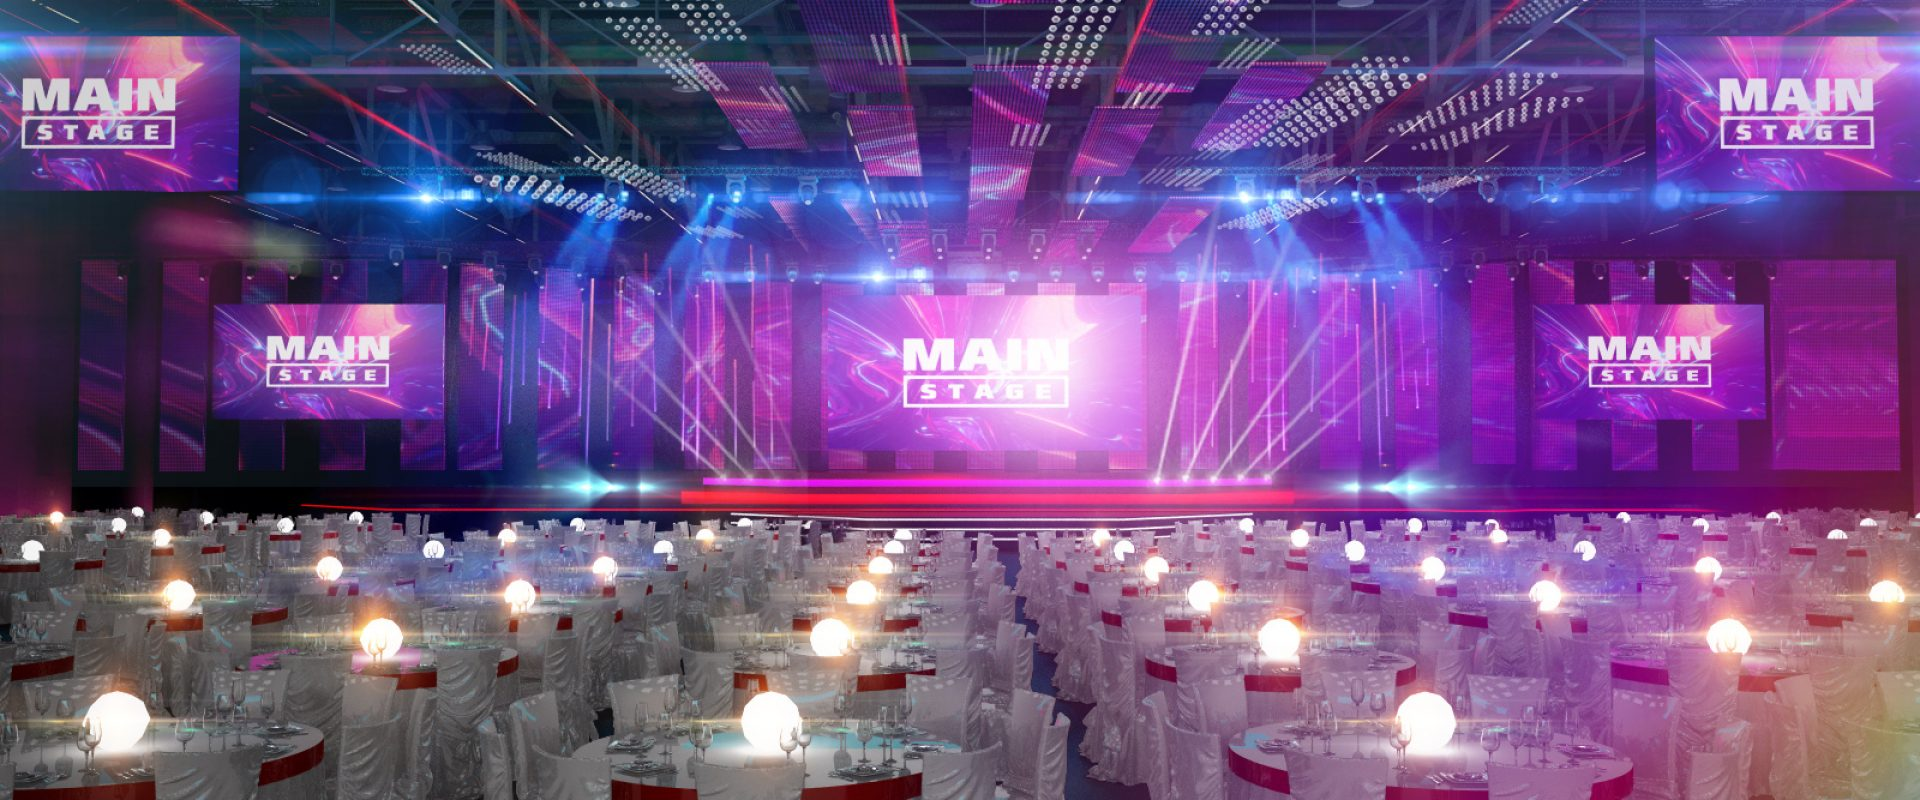 mainstage_sged_eventdesign_5